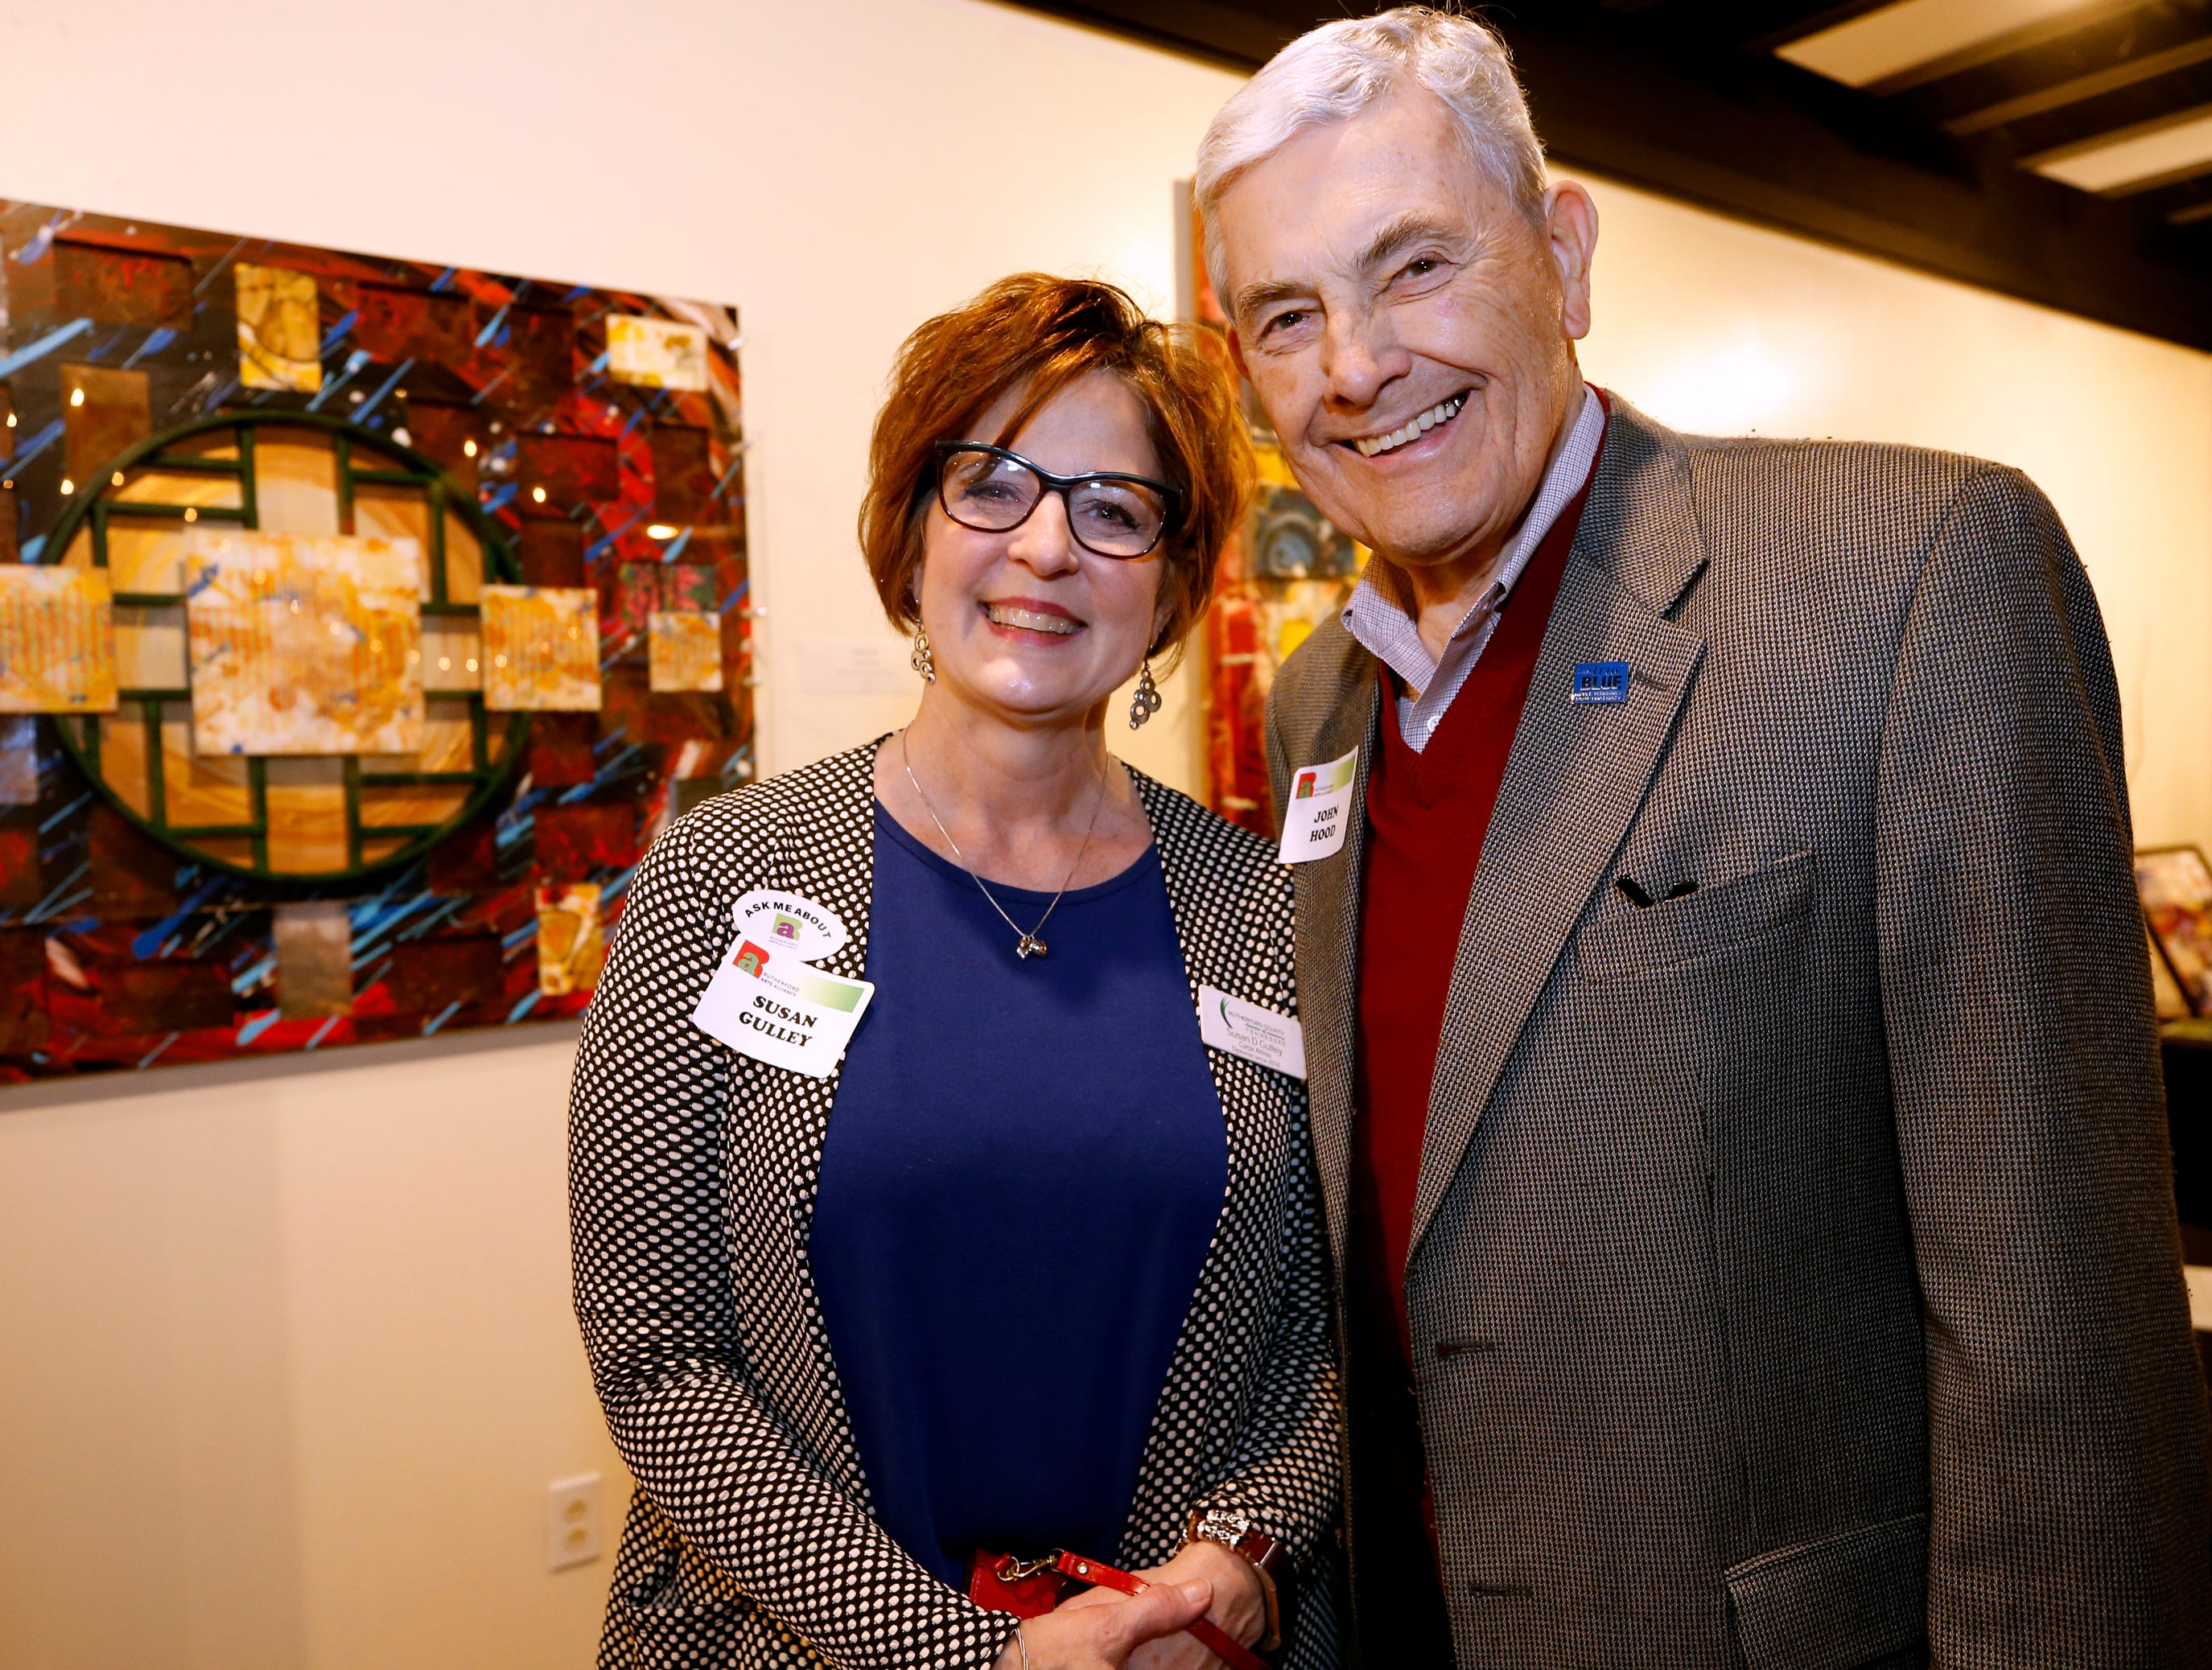 Susan Gulley, left and John Hood at an arts reception for Rutherford Arts Alliance held at the Center for the Arts on Wednesday Jan. 9, 2019.